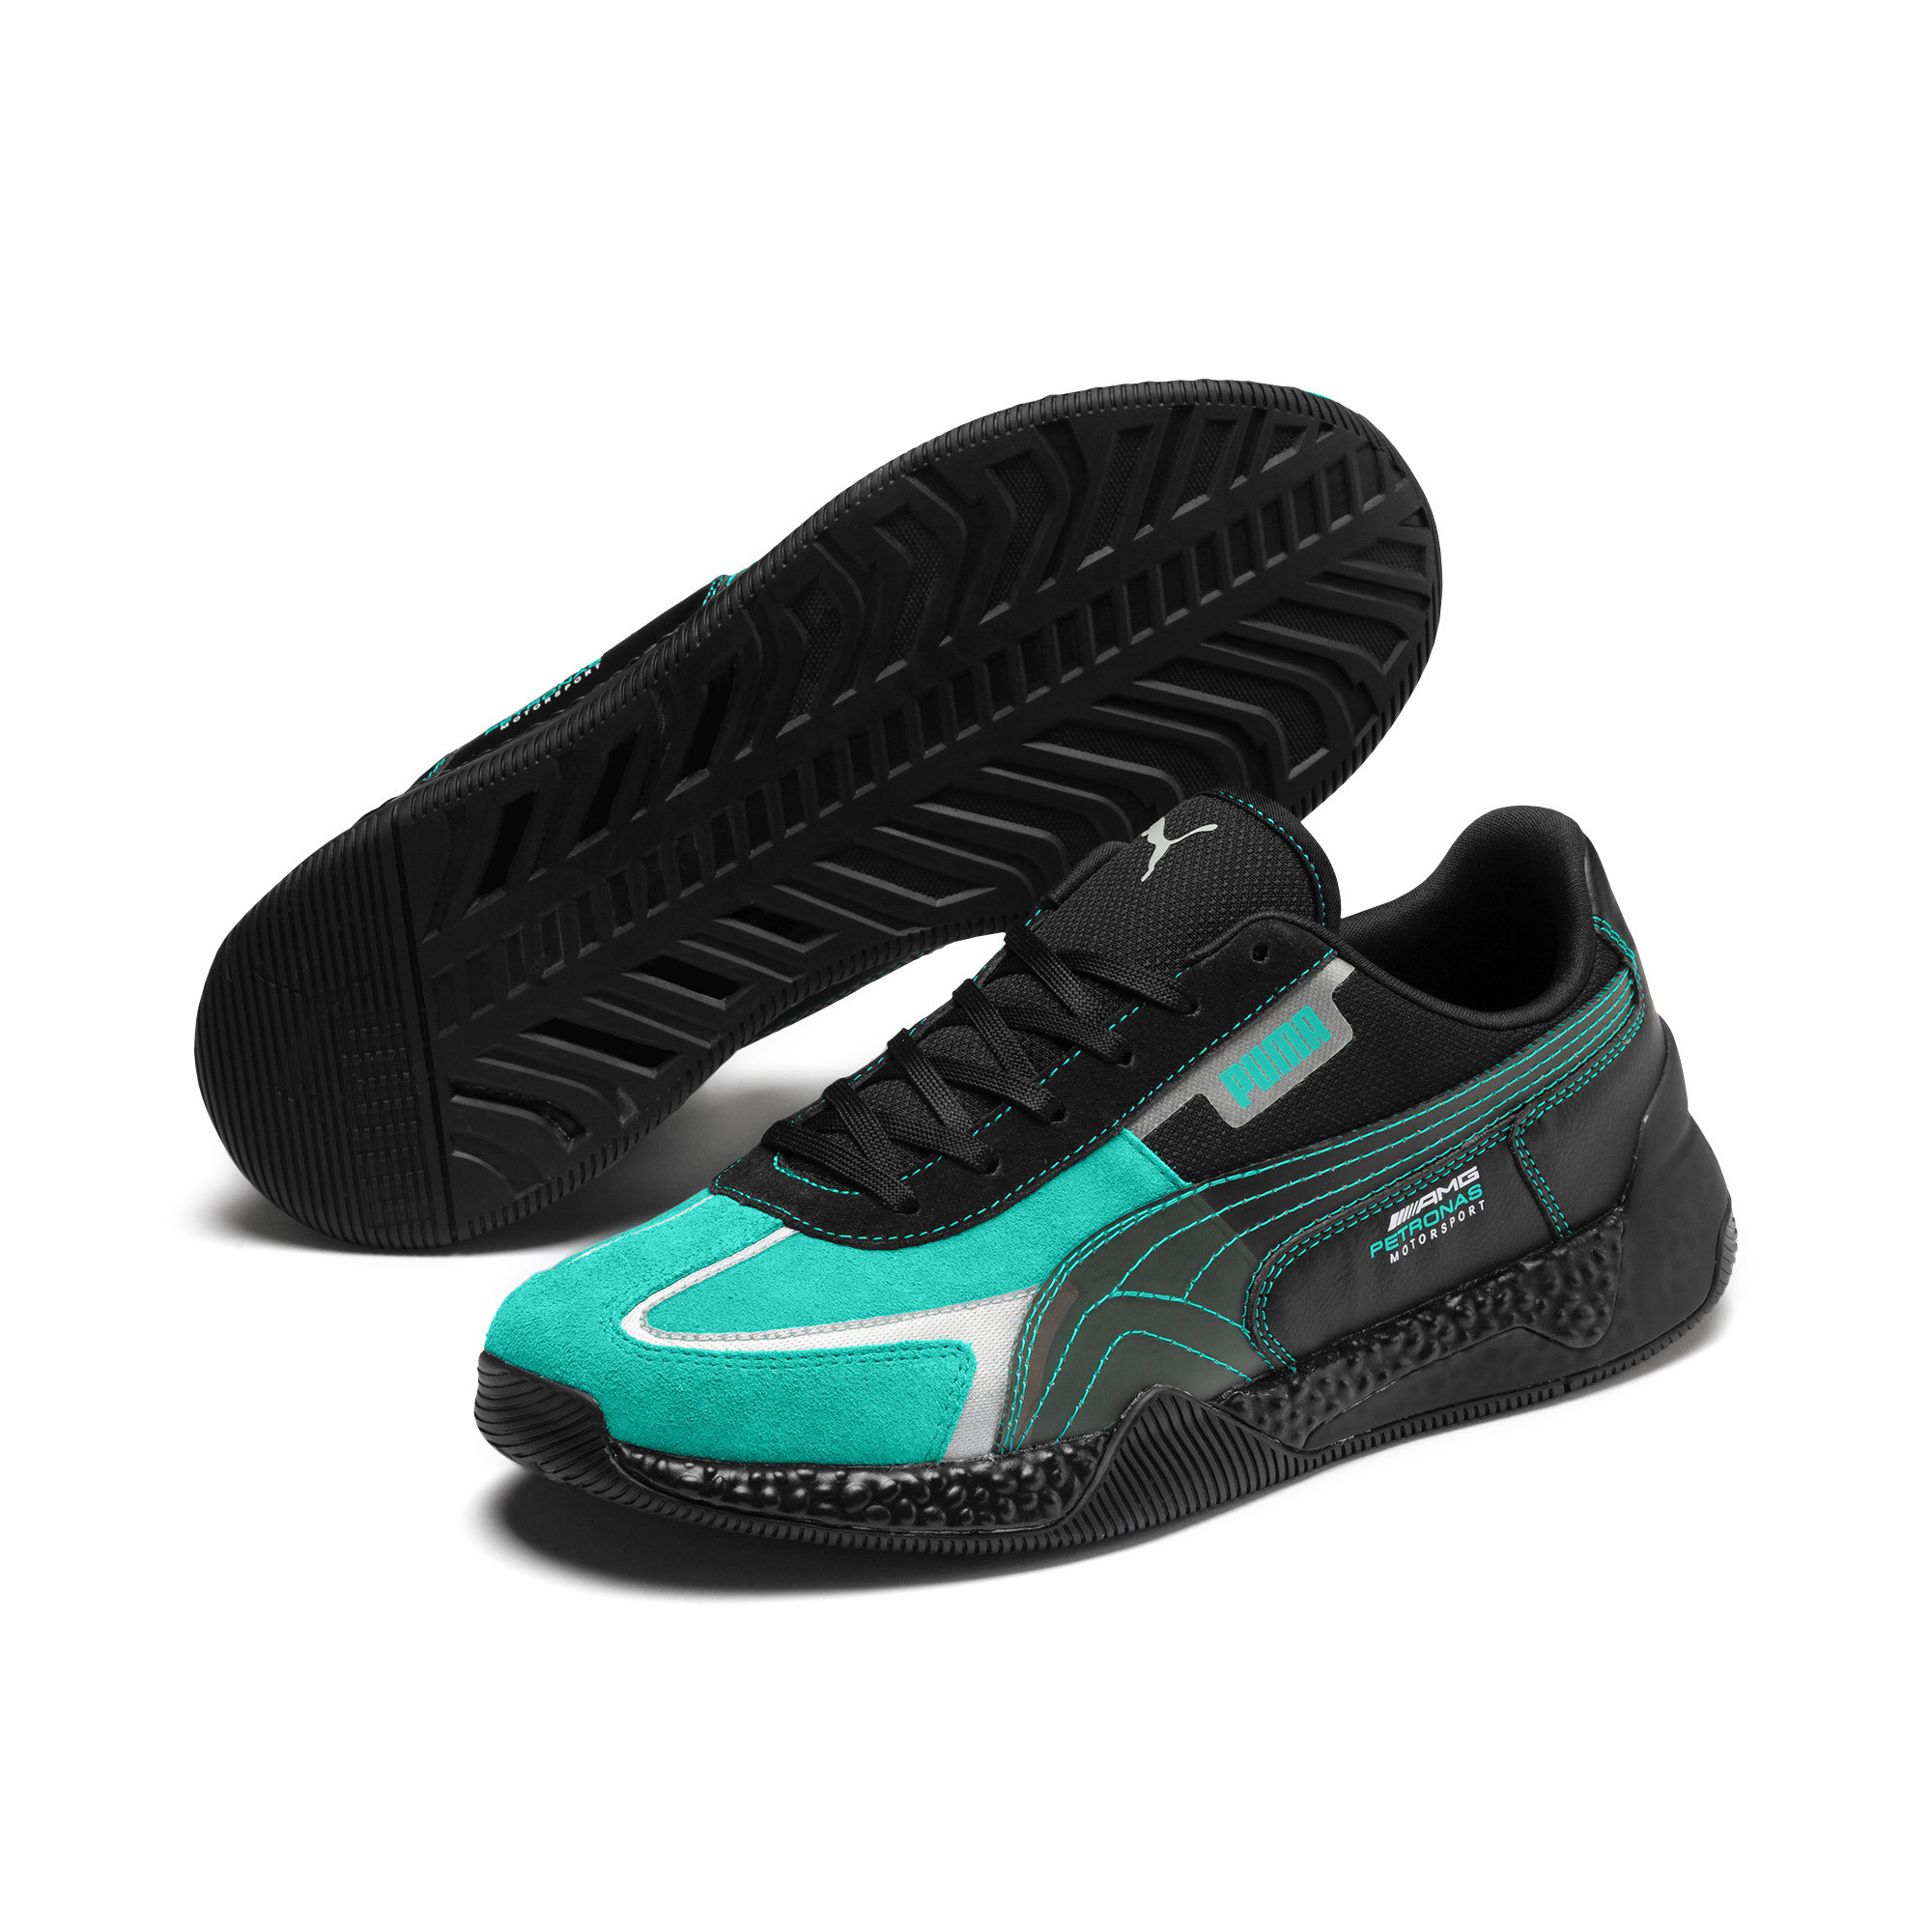 Details about PUMA Men's Mercedes AMG Petronas Speed HYBRID Running Shoes